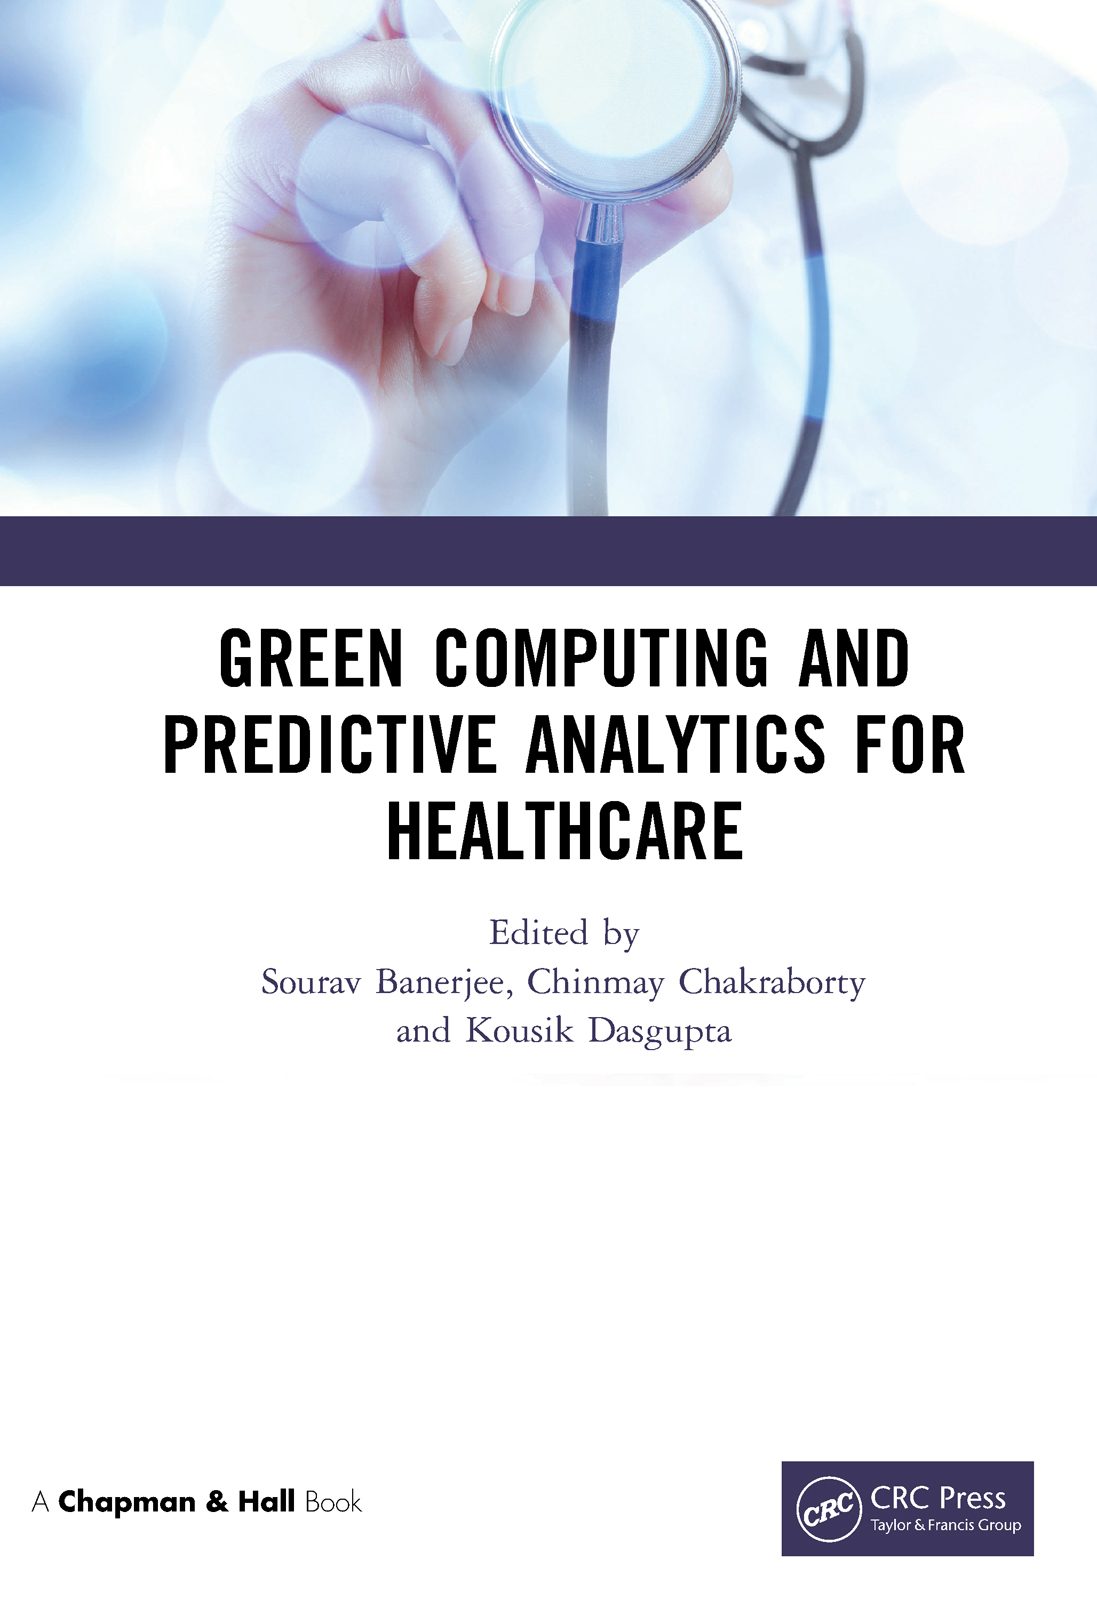 A Study on Energy-Efficient and Green IoT for Healthcare Applications